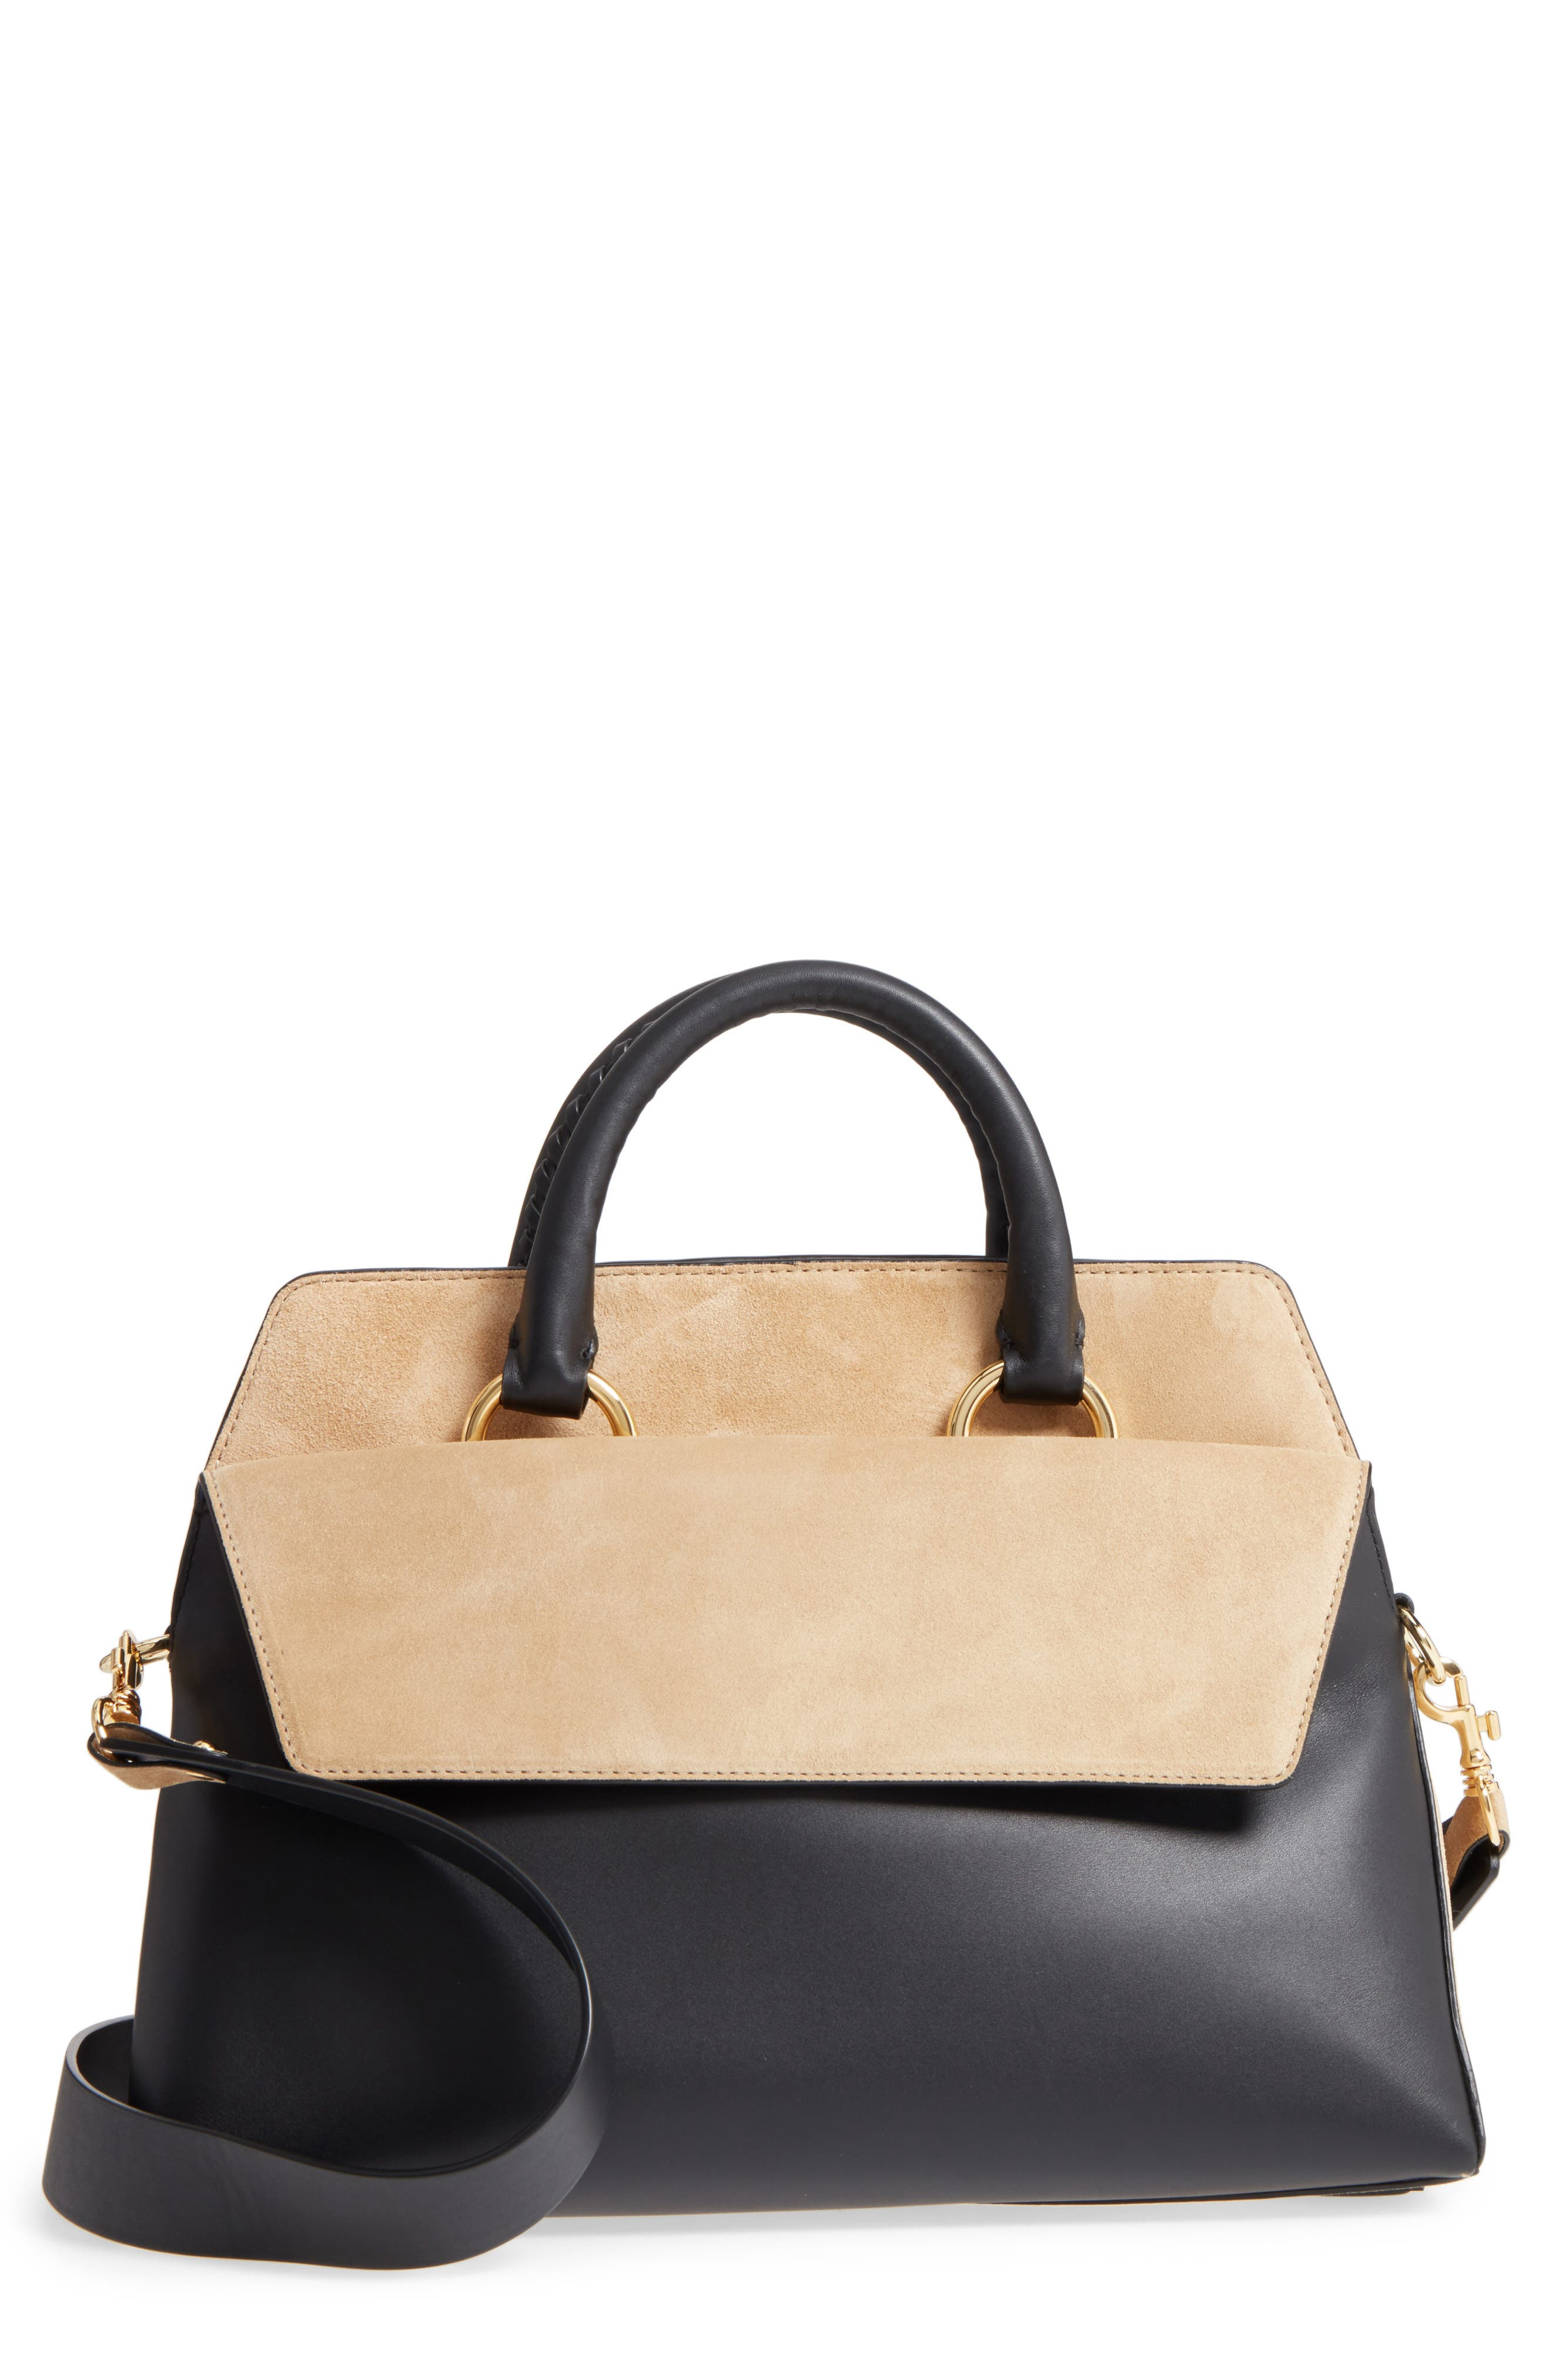 Large Leather & Suede Satchel,                             Main thumbnail 1, color,                             001